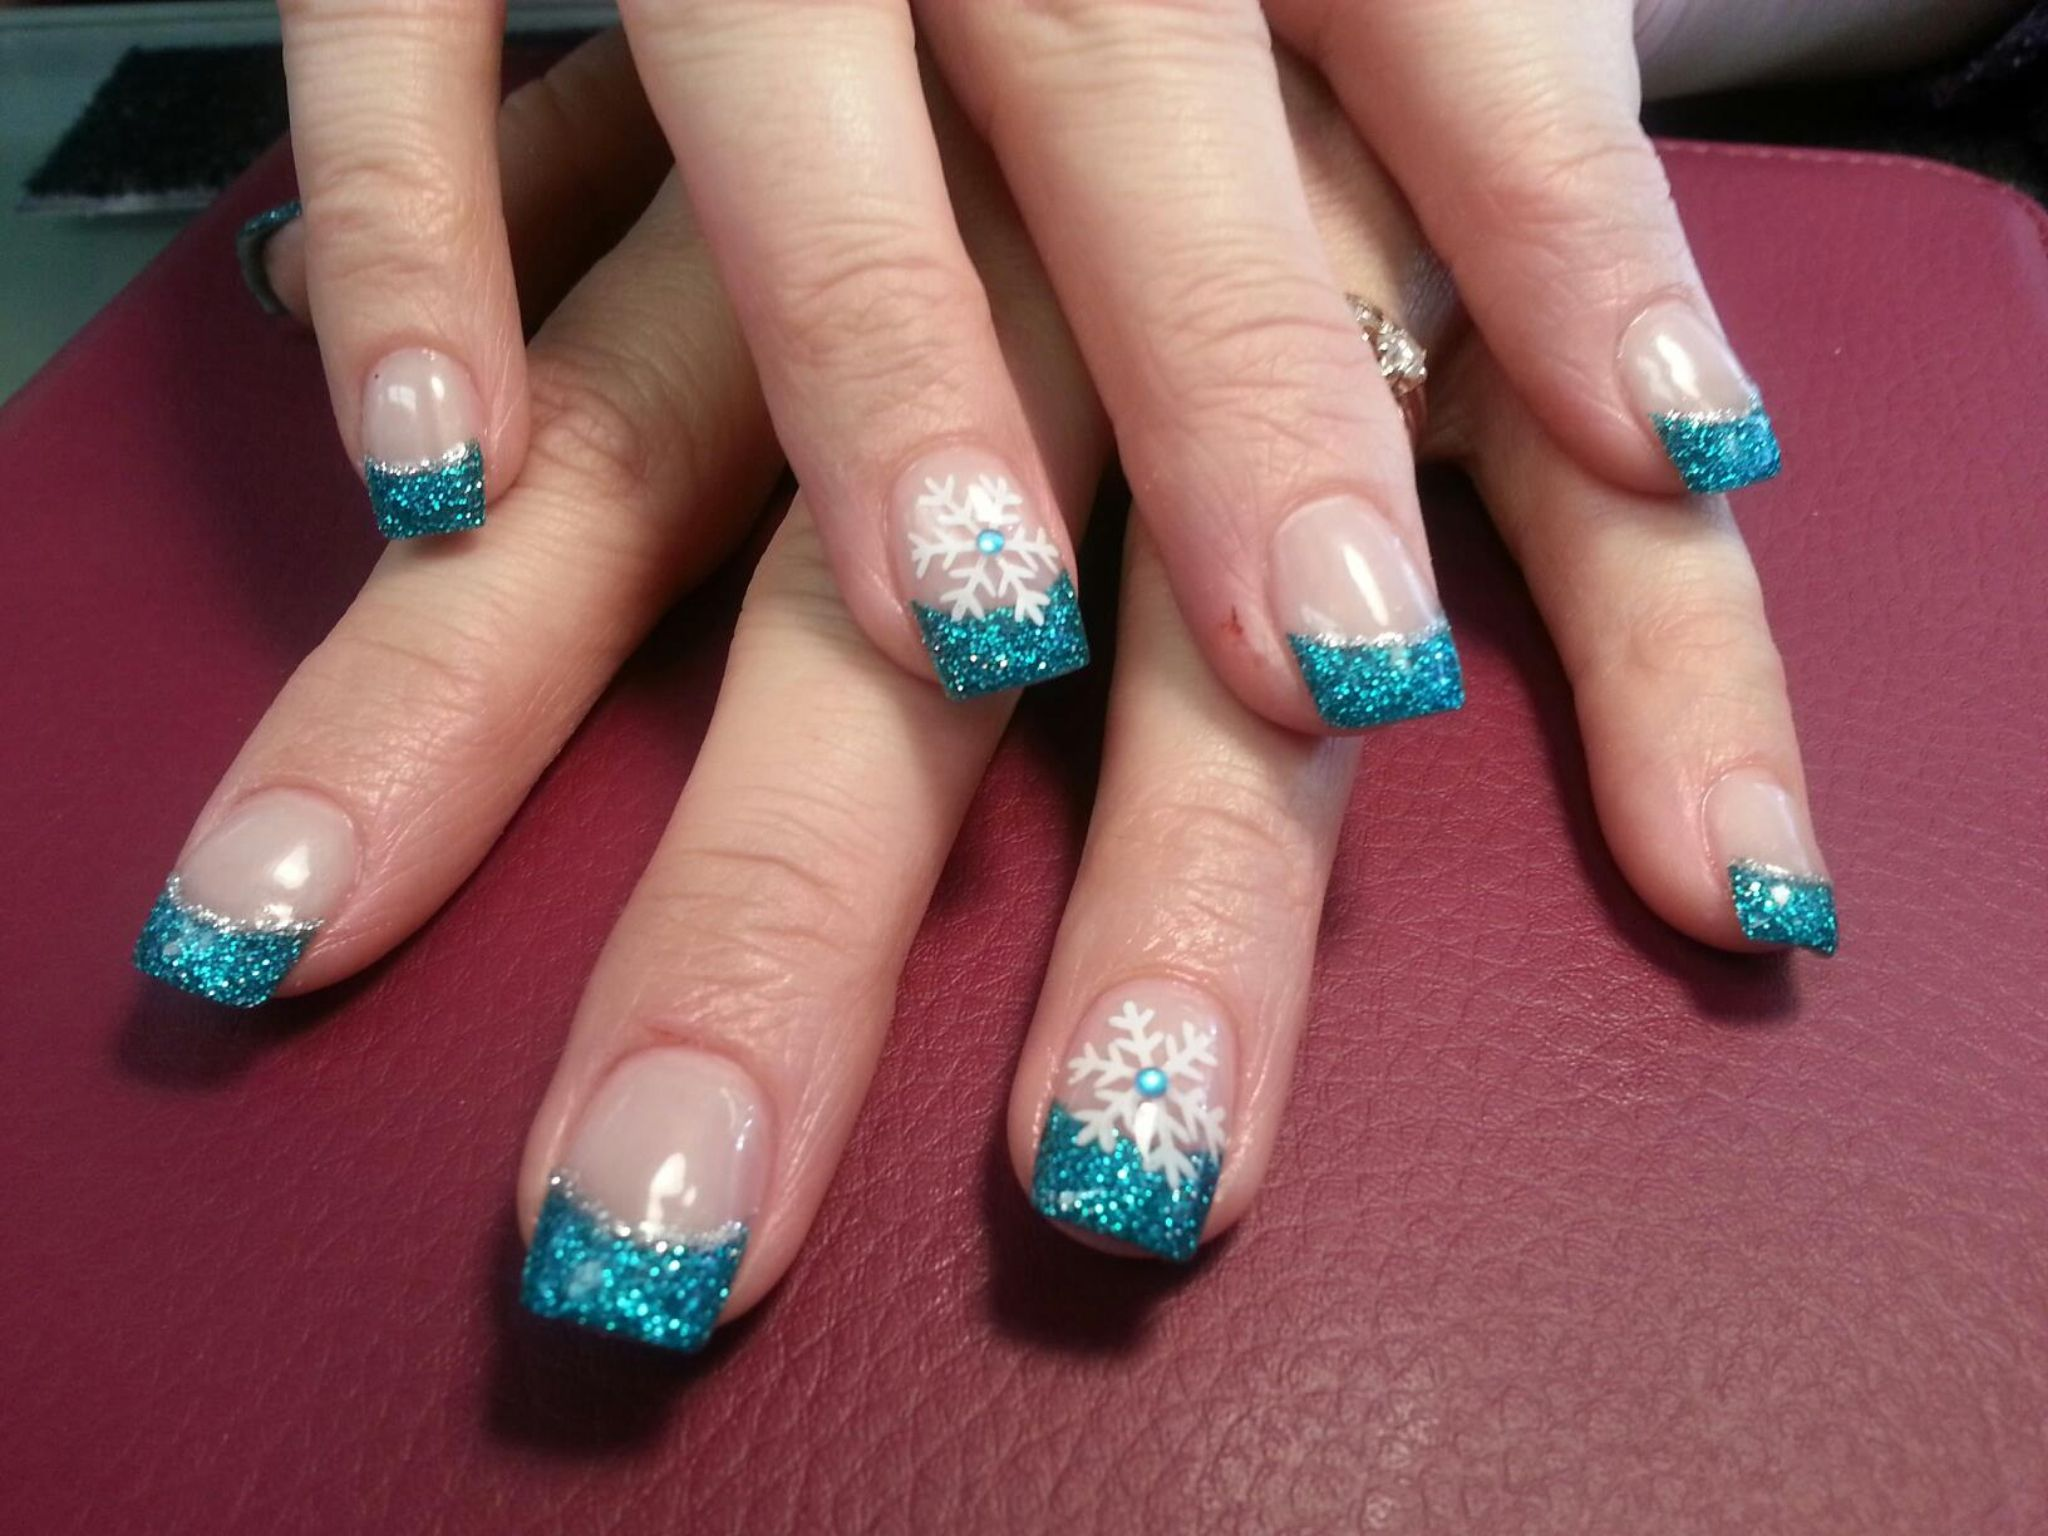 Pin by Dee Wonders on Nails   Pinterest